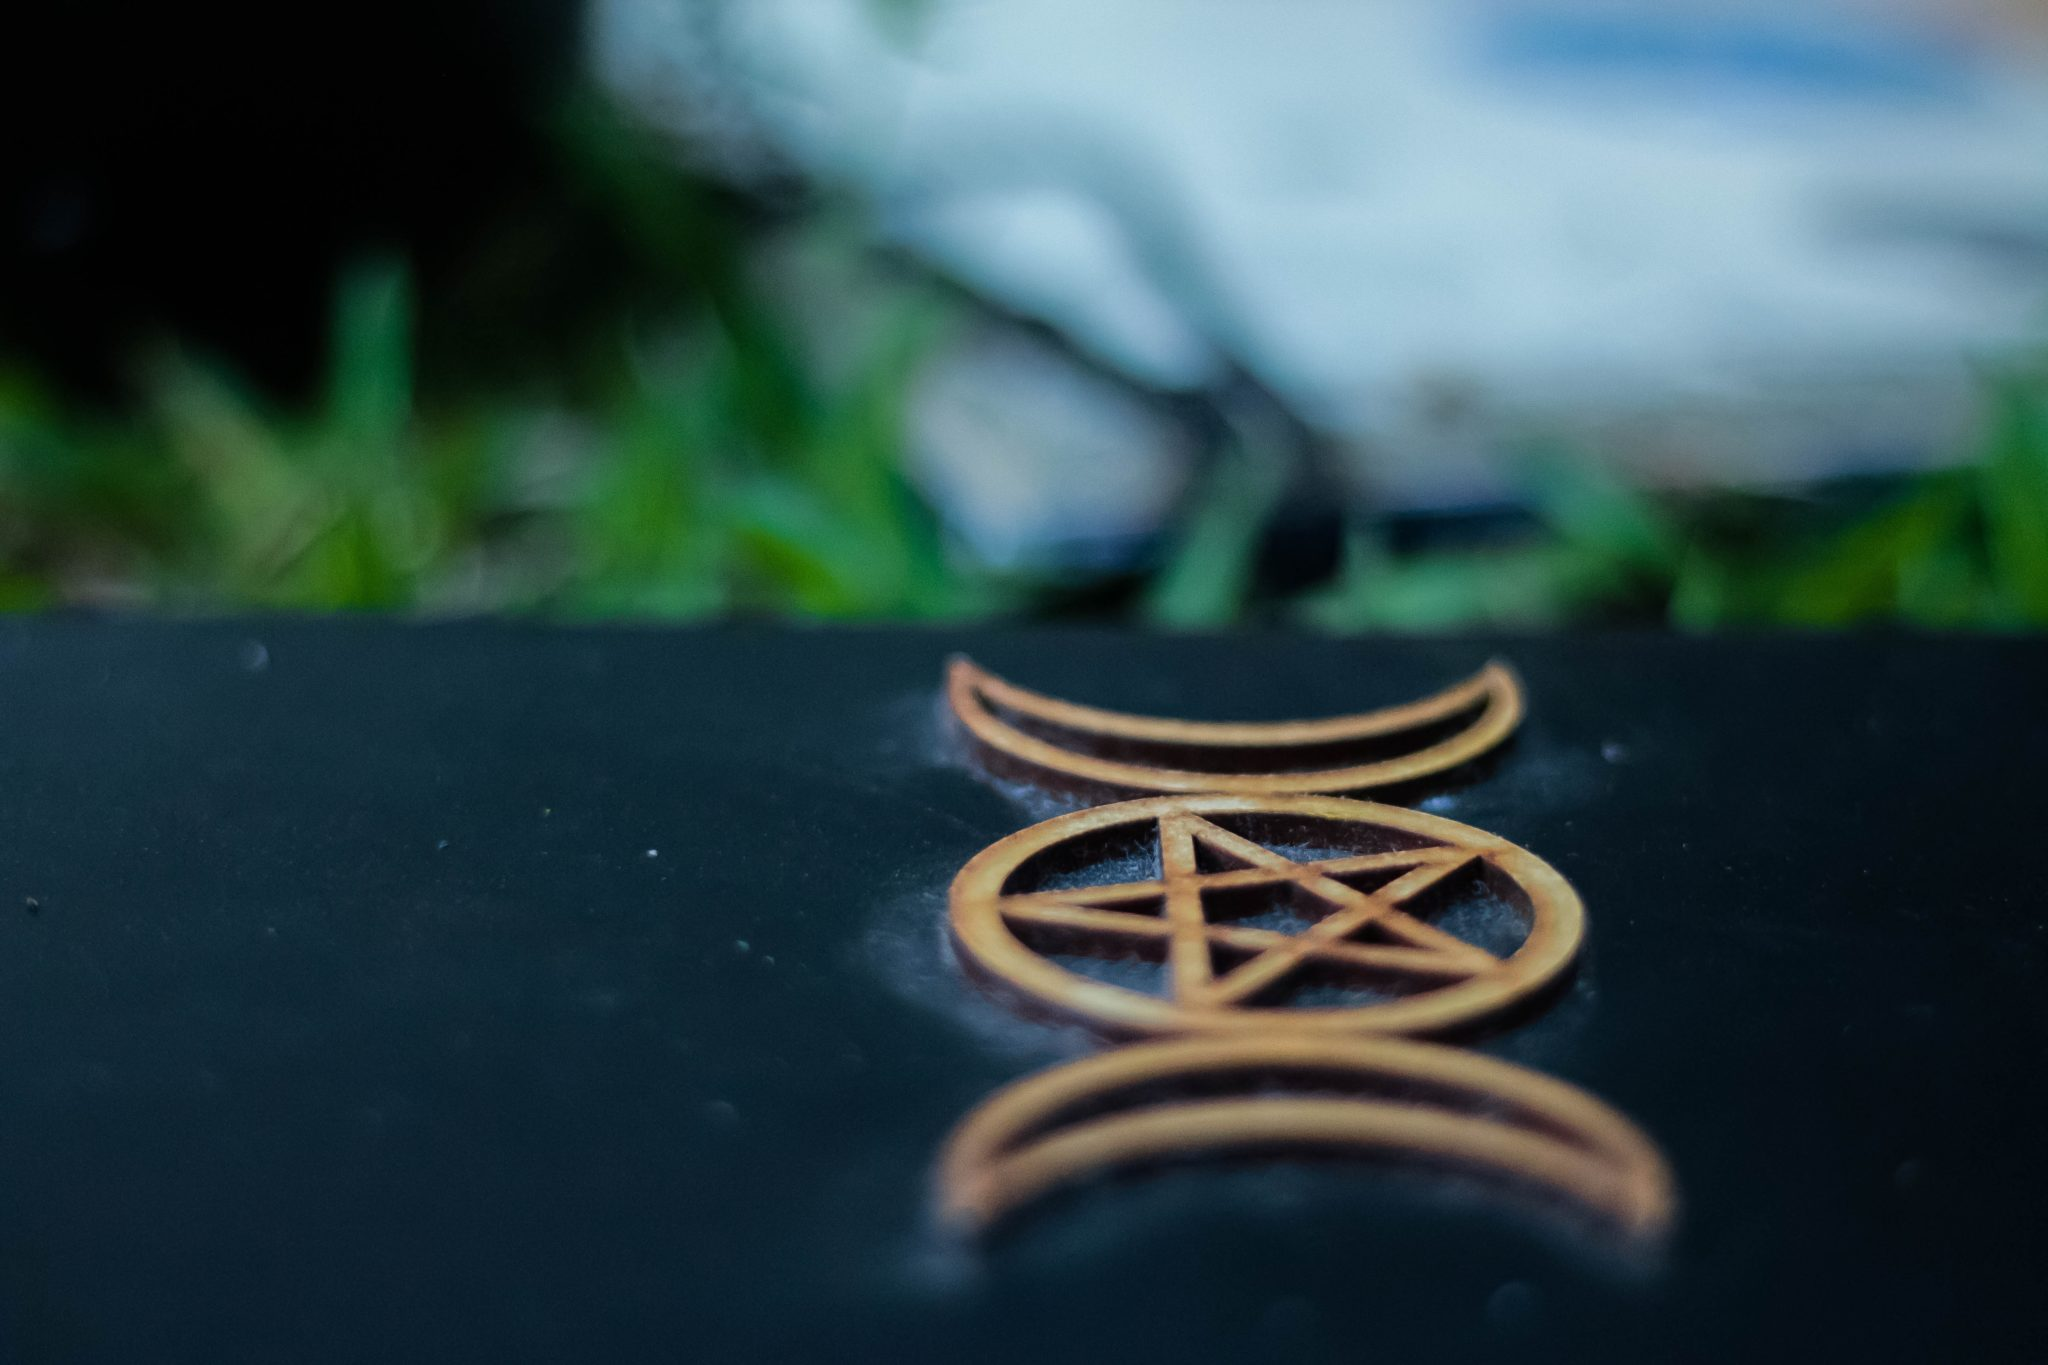 8 Facts You Might Not Know About Wicca and Modern Witchcraft